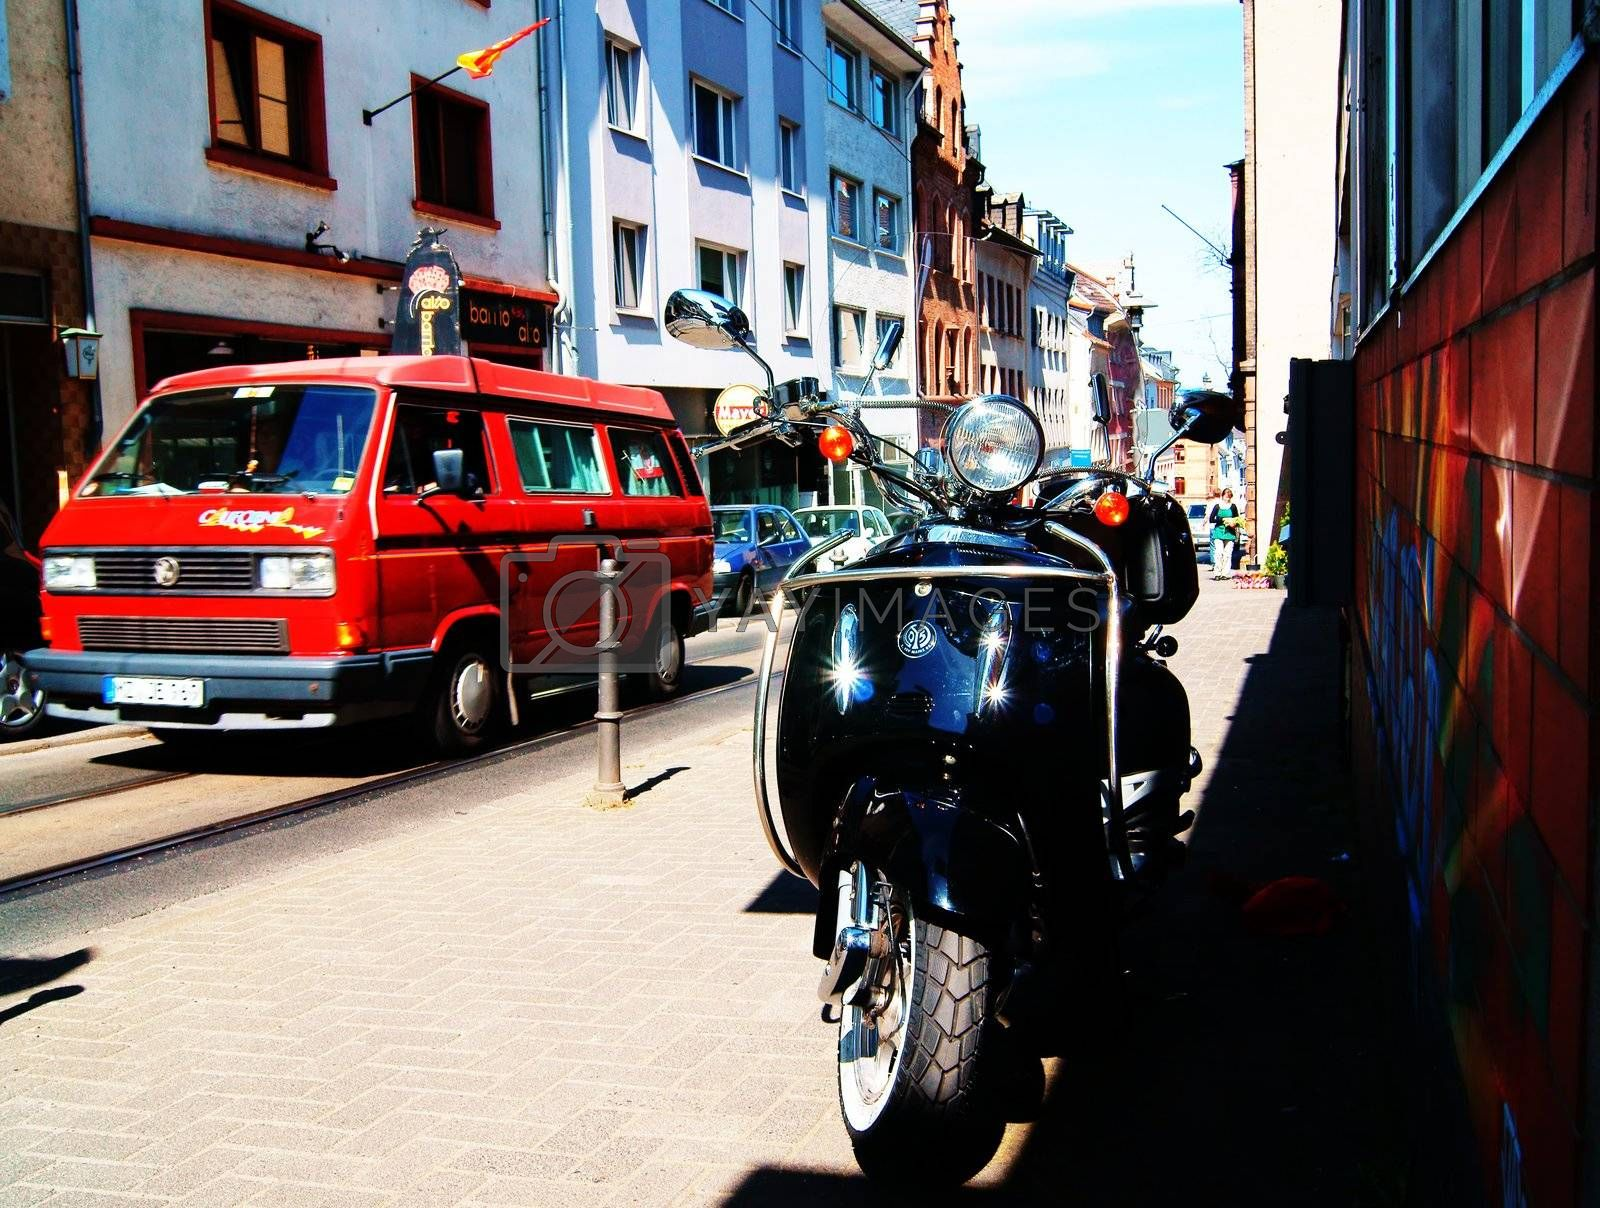 Street scene in the historic old town of Mainz.